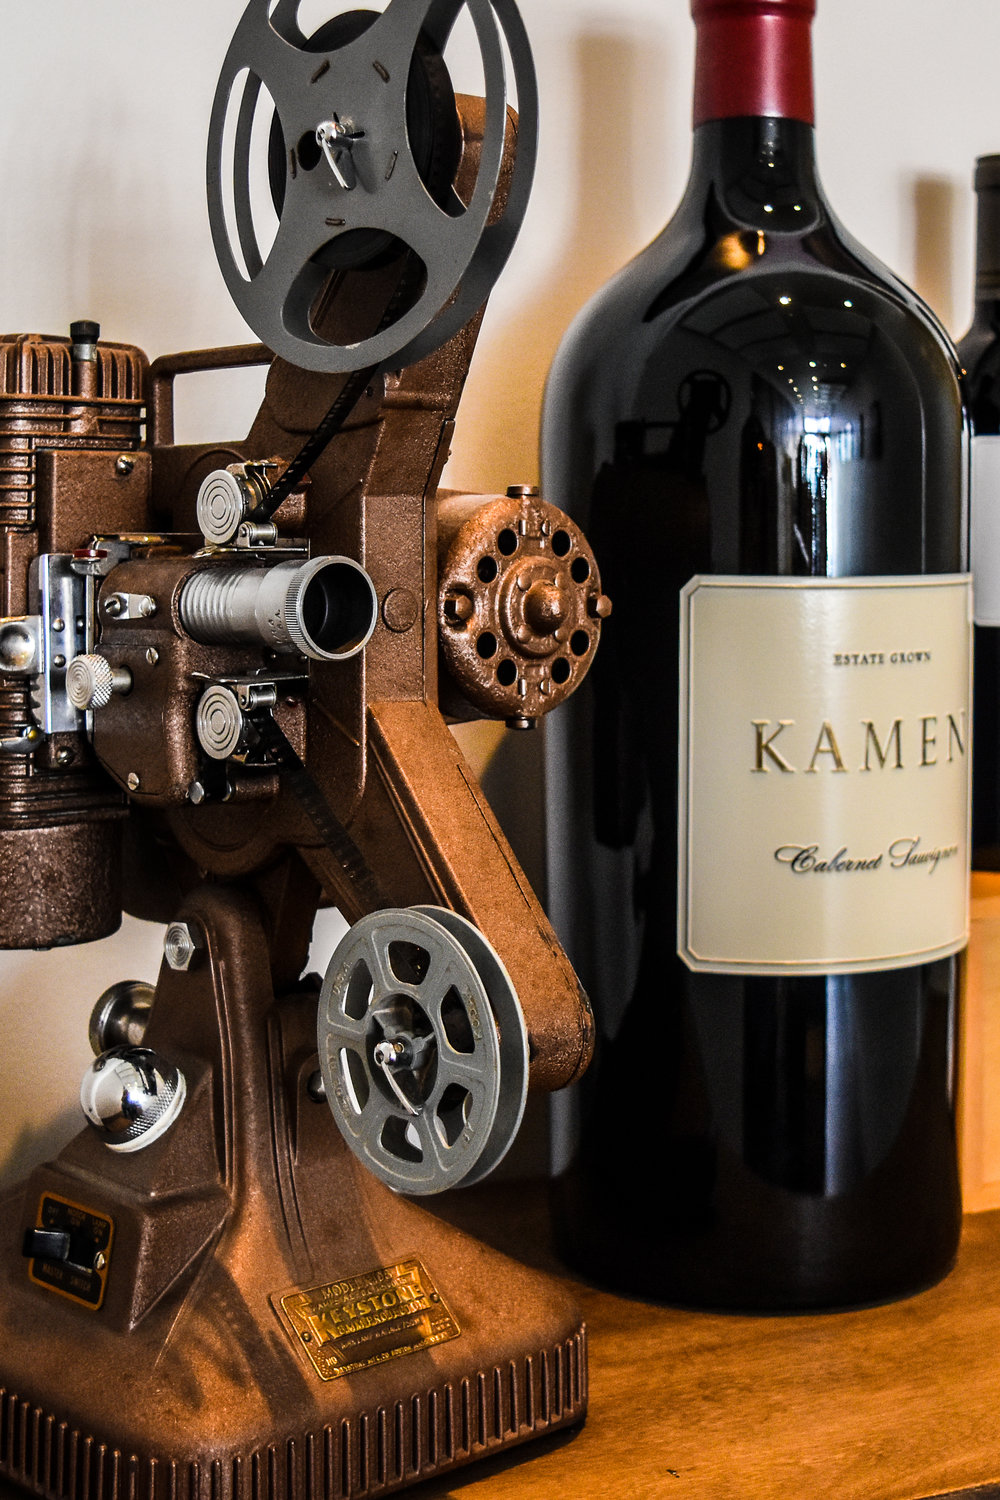 Kamen Estate Wines, Summer 2017 (Sonoma)